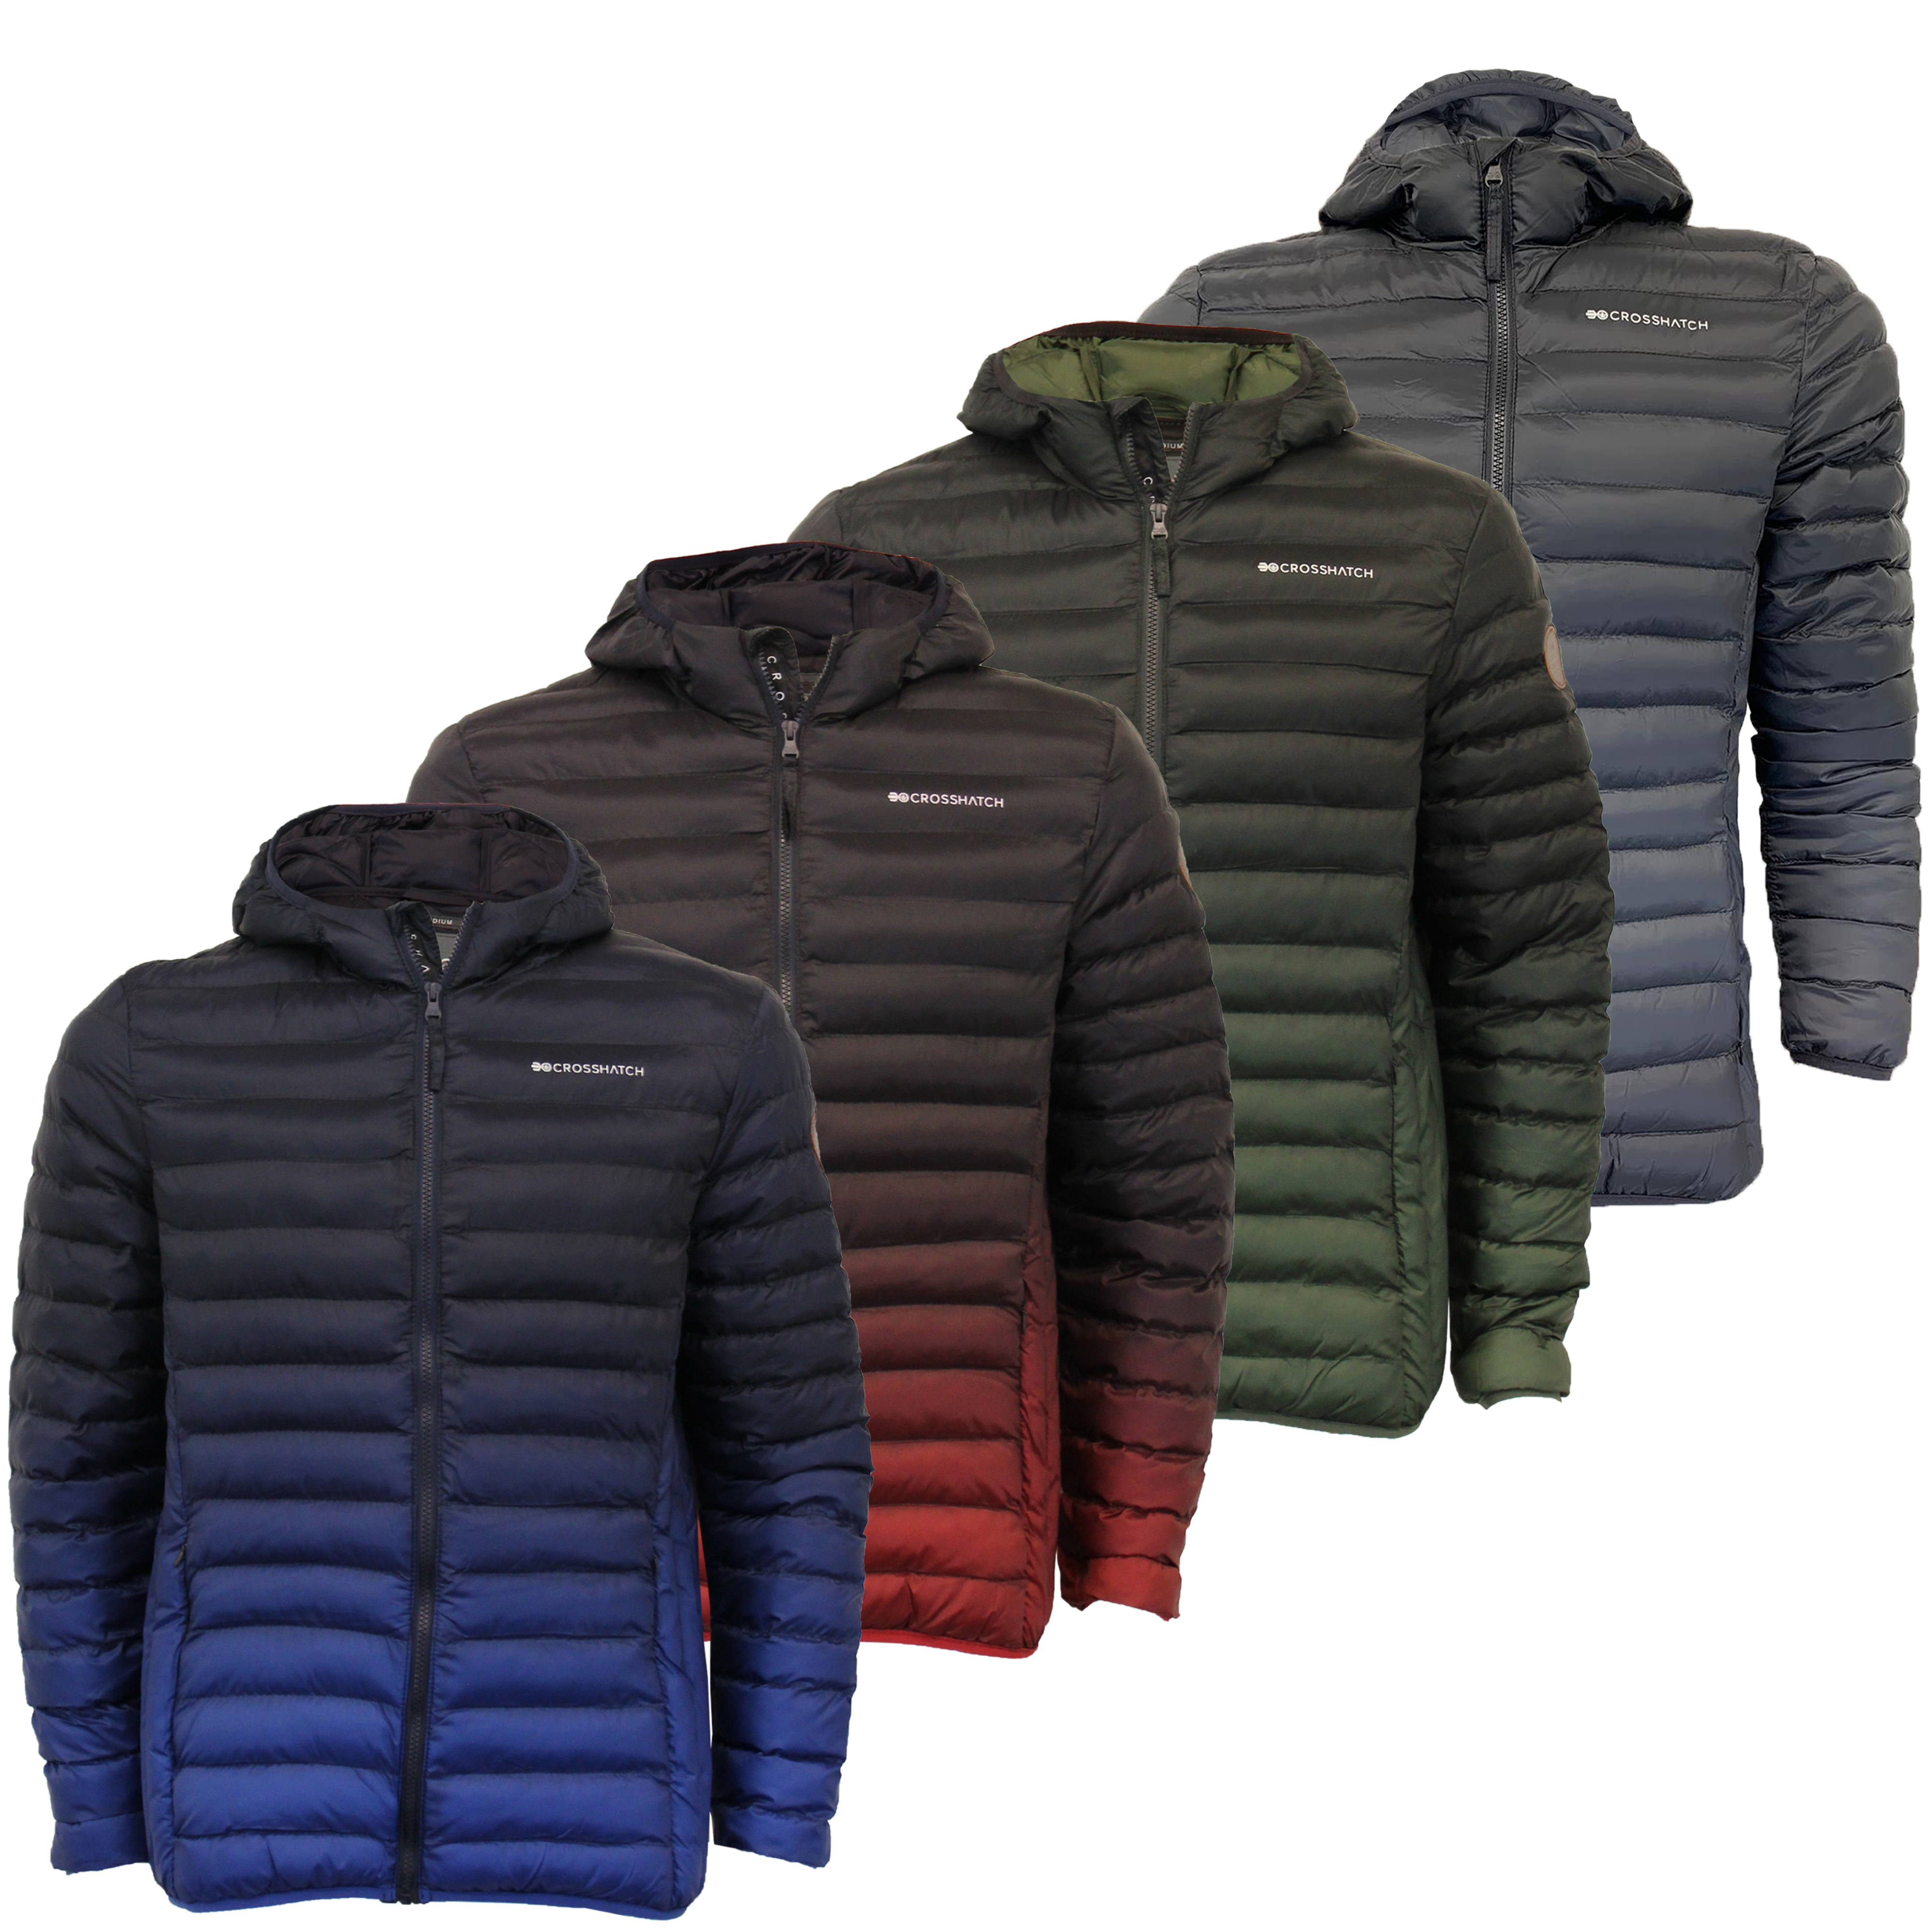 Mens-Jacket-Crosshatch-Hooded-Padded-Quilted-Two-Tone-FADEDOWN-Lined-Winter-New thumbnail 6